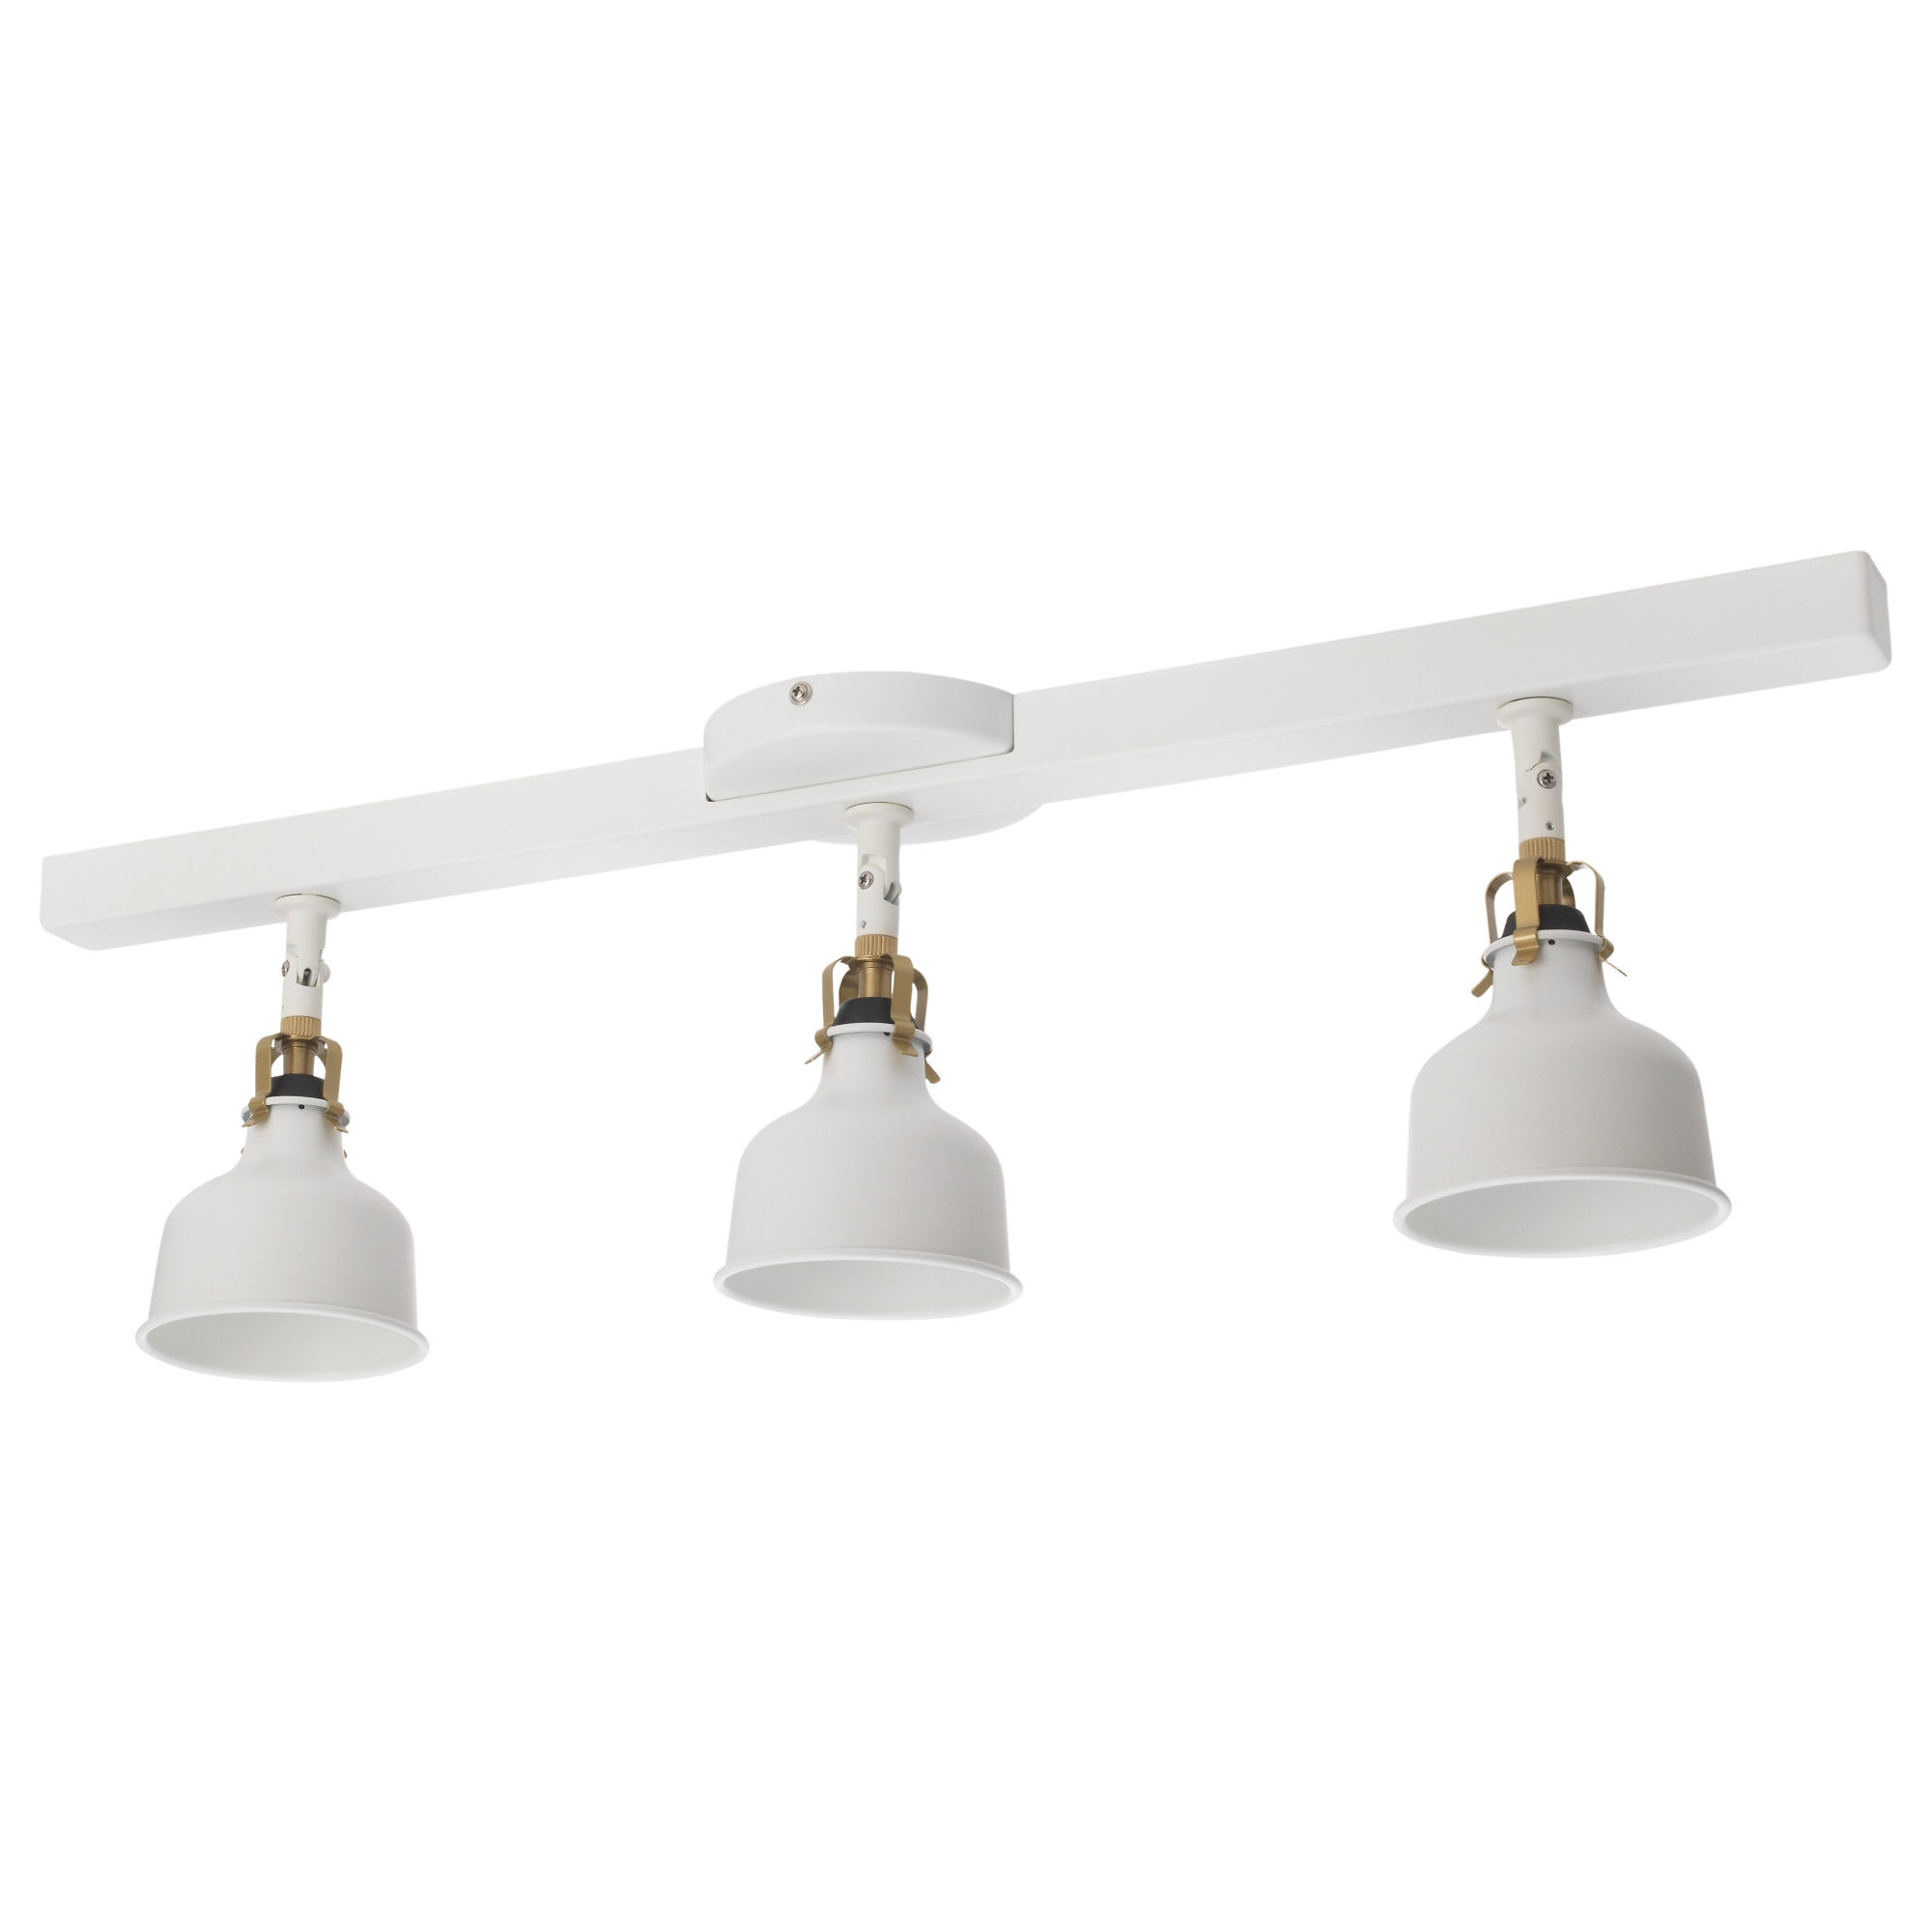 RANARP ceiling track 3 spotlights off-white white Length 29   Shade  sc 1 st  Ikea & Track Lighting - IKEA azcodes.com